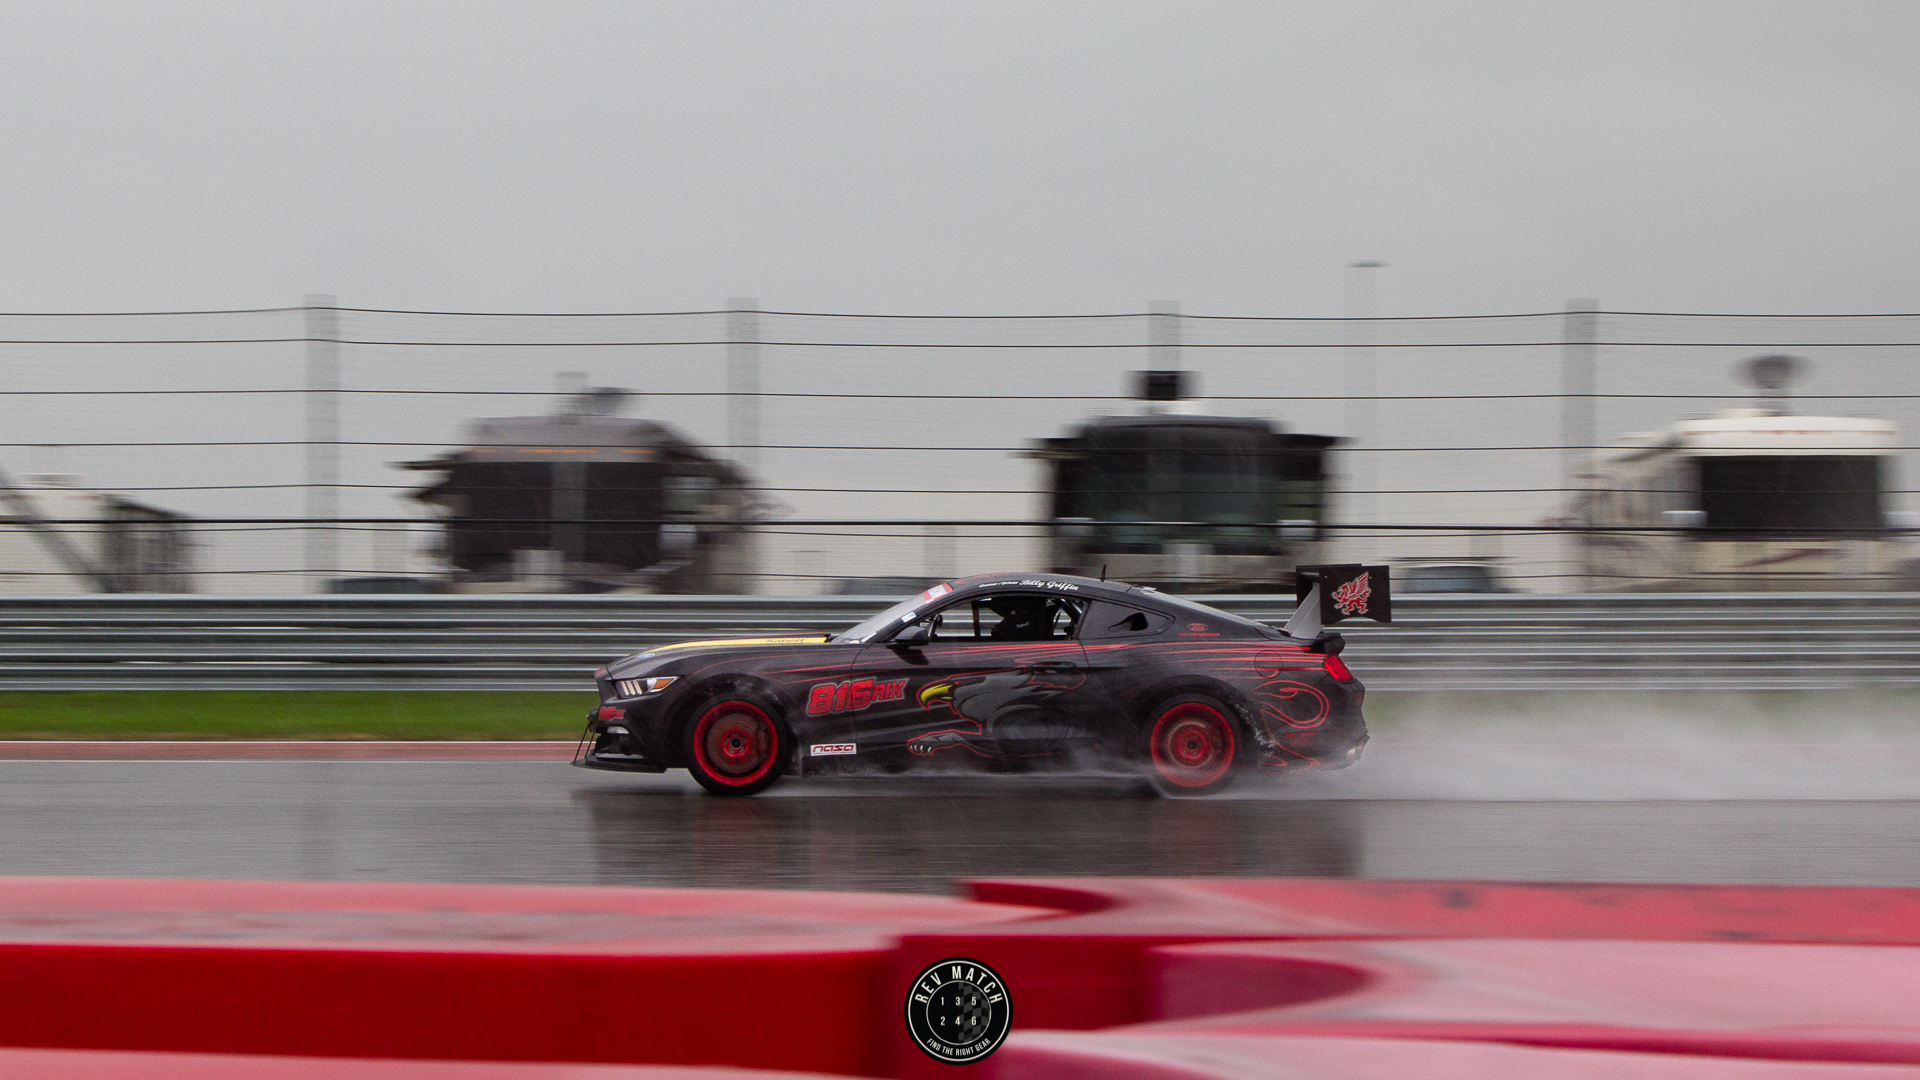 RMM x NASA at COTA 2018-187.jpg